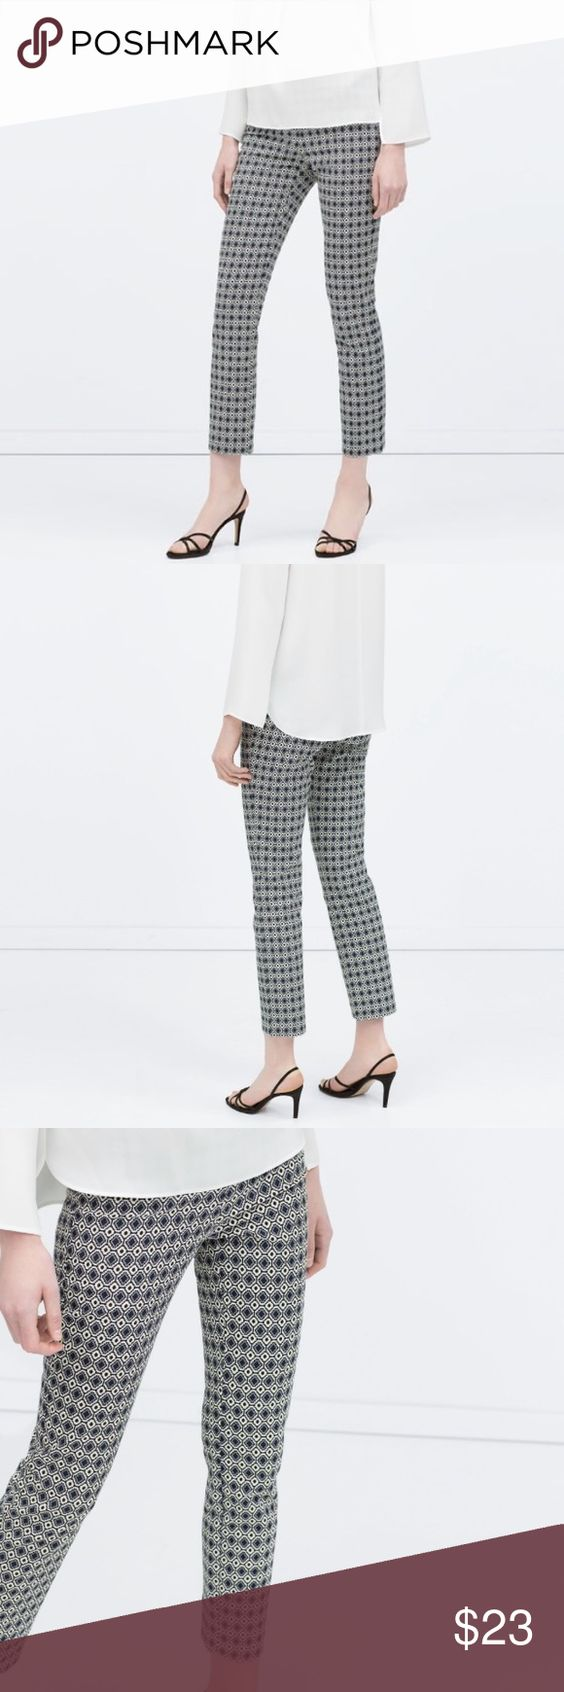 "ZARA GEOMETRIC JAQUARD LEGGING PANT #199 Zara Basic, geometrical pattern pant, straight leg. Size L CONDITION: EUC, No issues.  🎁 SHIPS WITHIN 24HRS  CHEST: WAIST: 32"" LENGTH: 37"" INSEAM: 36"" *All measurements taken while item is laid flat (doubled when necessary) and measured across the front  MATERIAL: Polyester, cotton, Elastane. STRETCH: no INSTAGRAM @ORNAMENTALSTONE 🚫Trading Zara Pants"